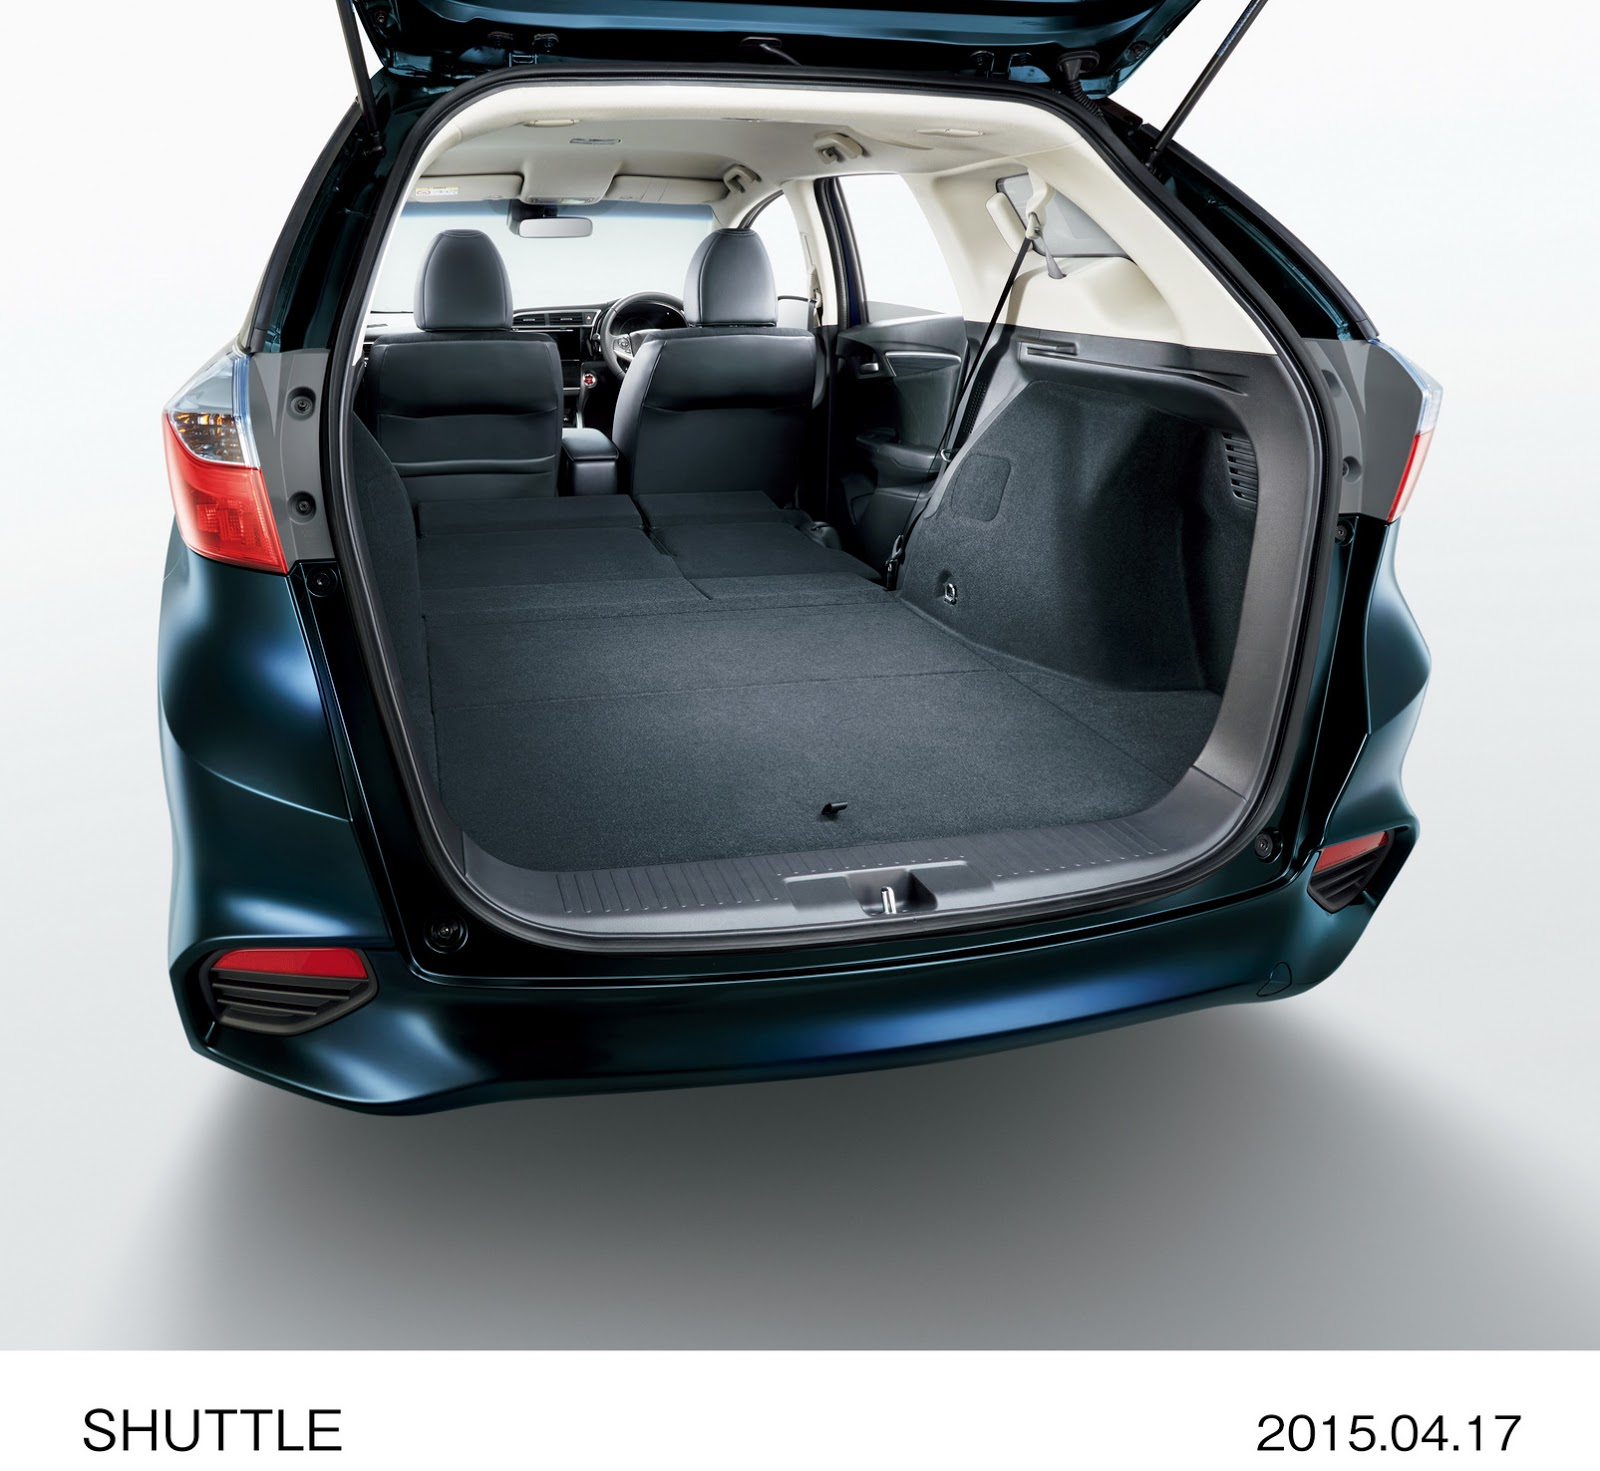 2015 Honda Shuttle Revealed in Japan: The Fit's Wagon Brother - autoevolution